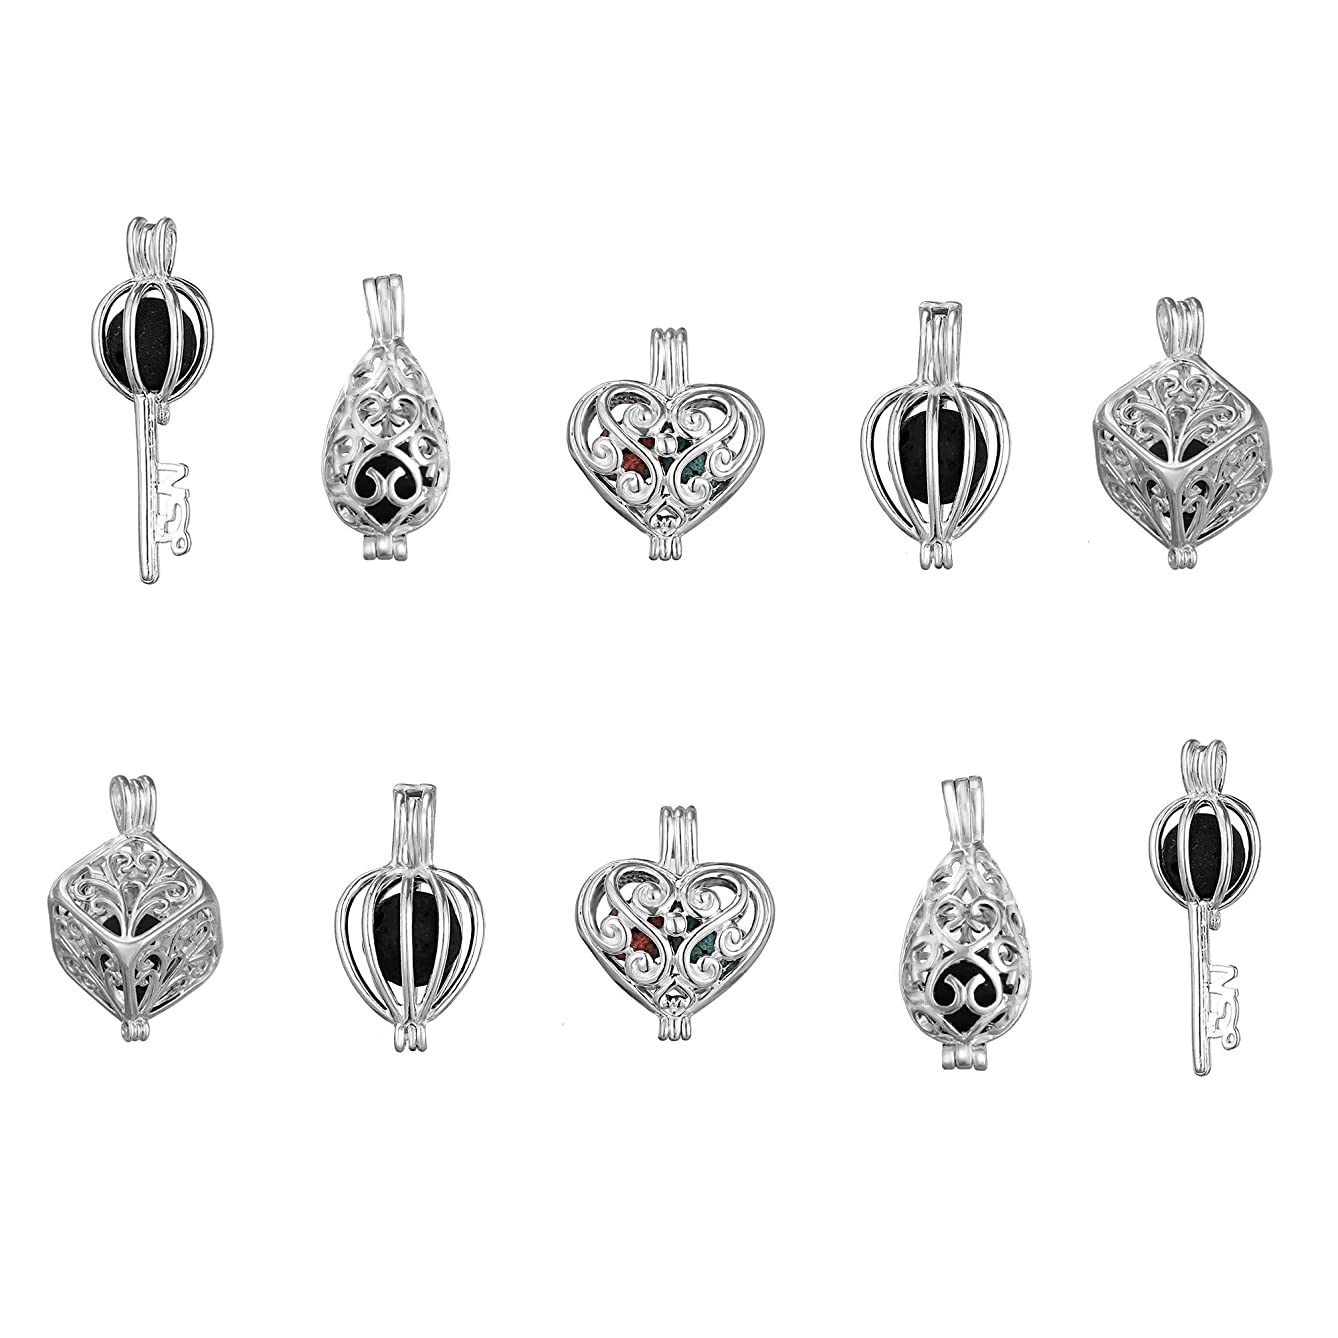 lisafinding 10pcs Mixed Style Silver Plated Bead Cage Locket Pendant - Add Your Own Stones, Rock to Cage,Add Perfume and Essential Oils to Create a Scent Diffusing Pendant Charms Fit Necklace